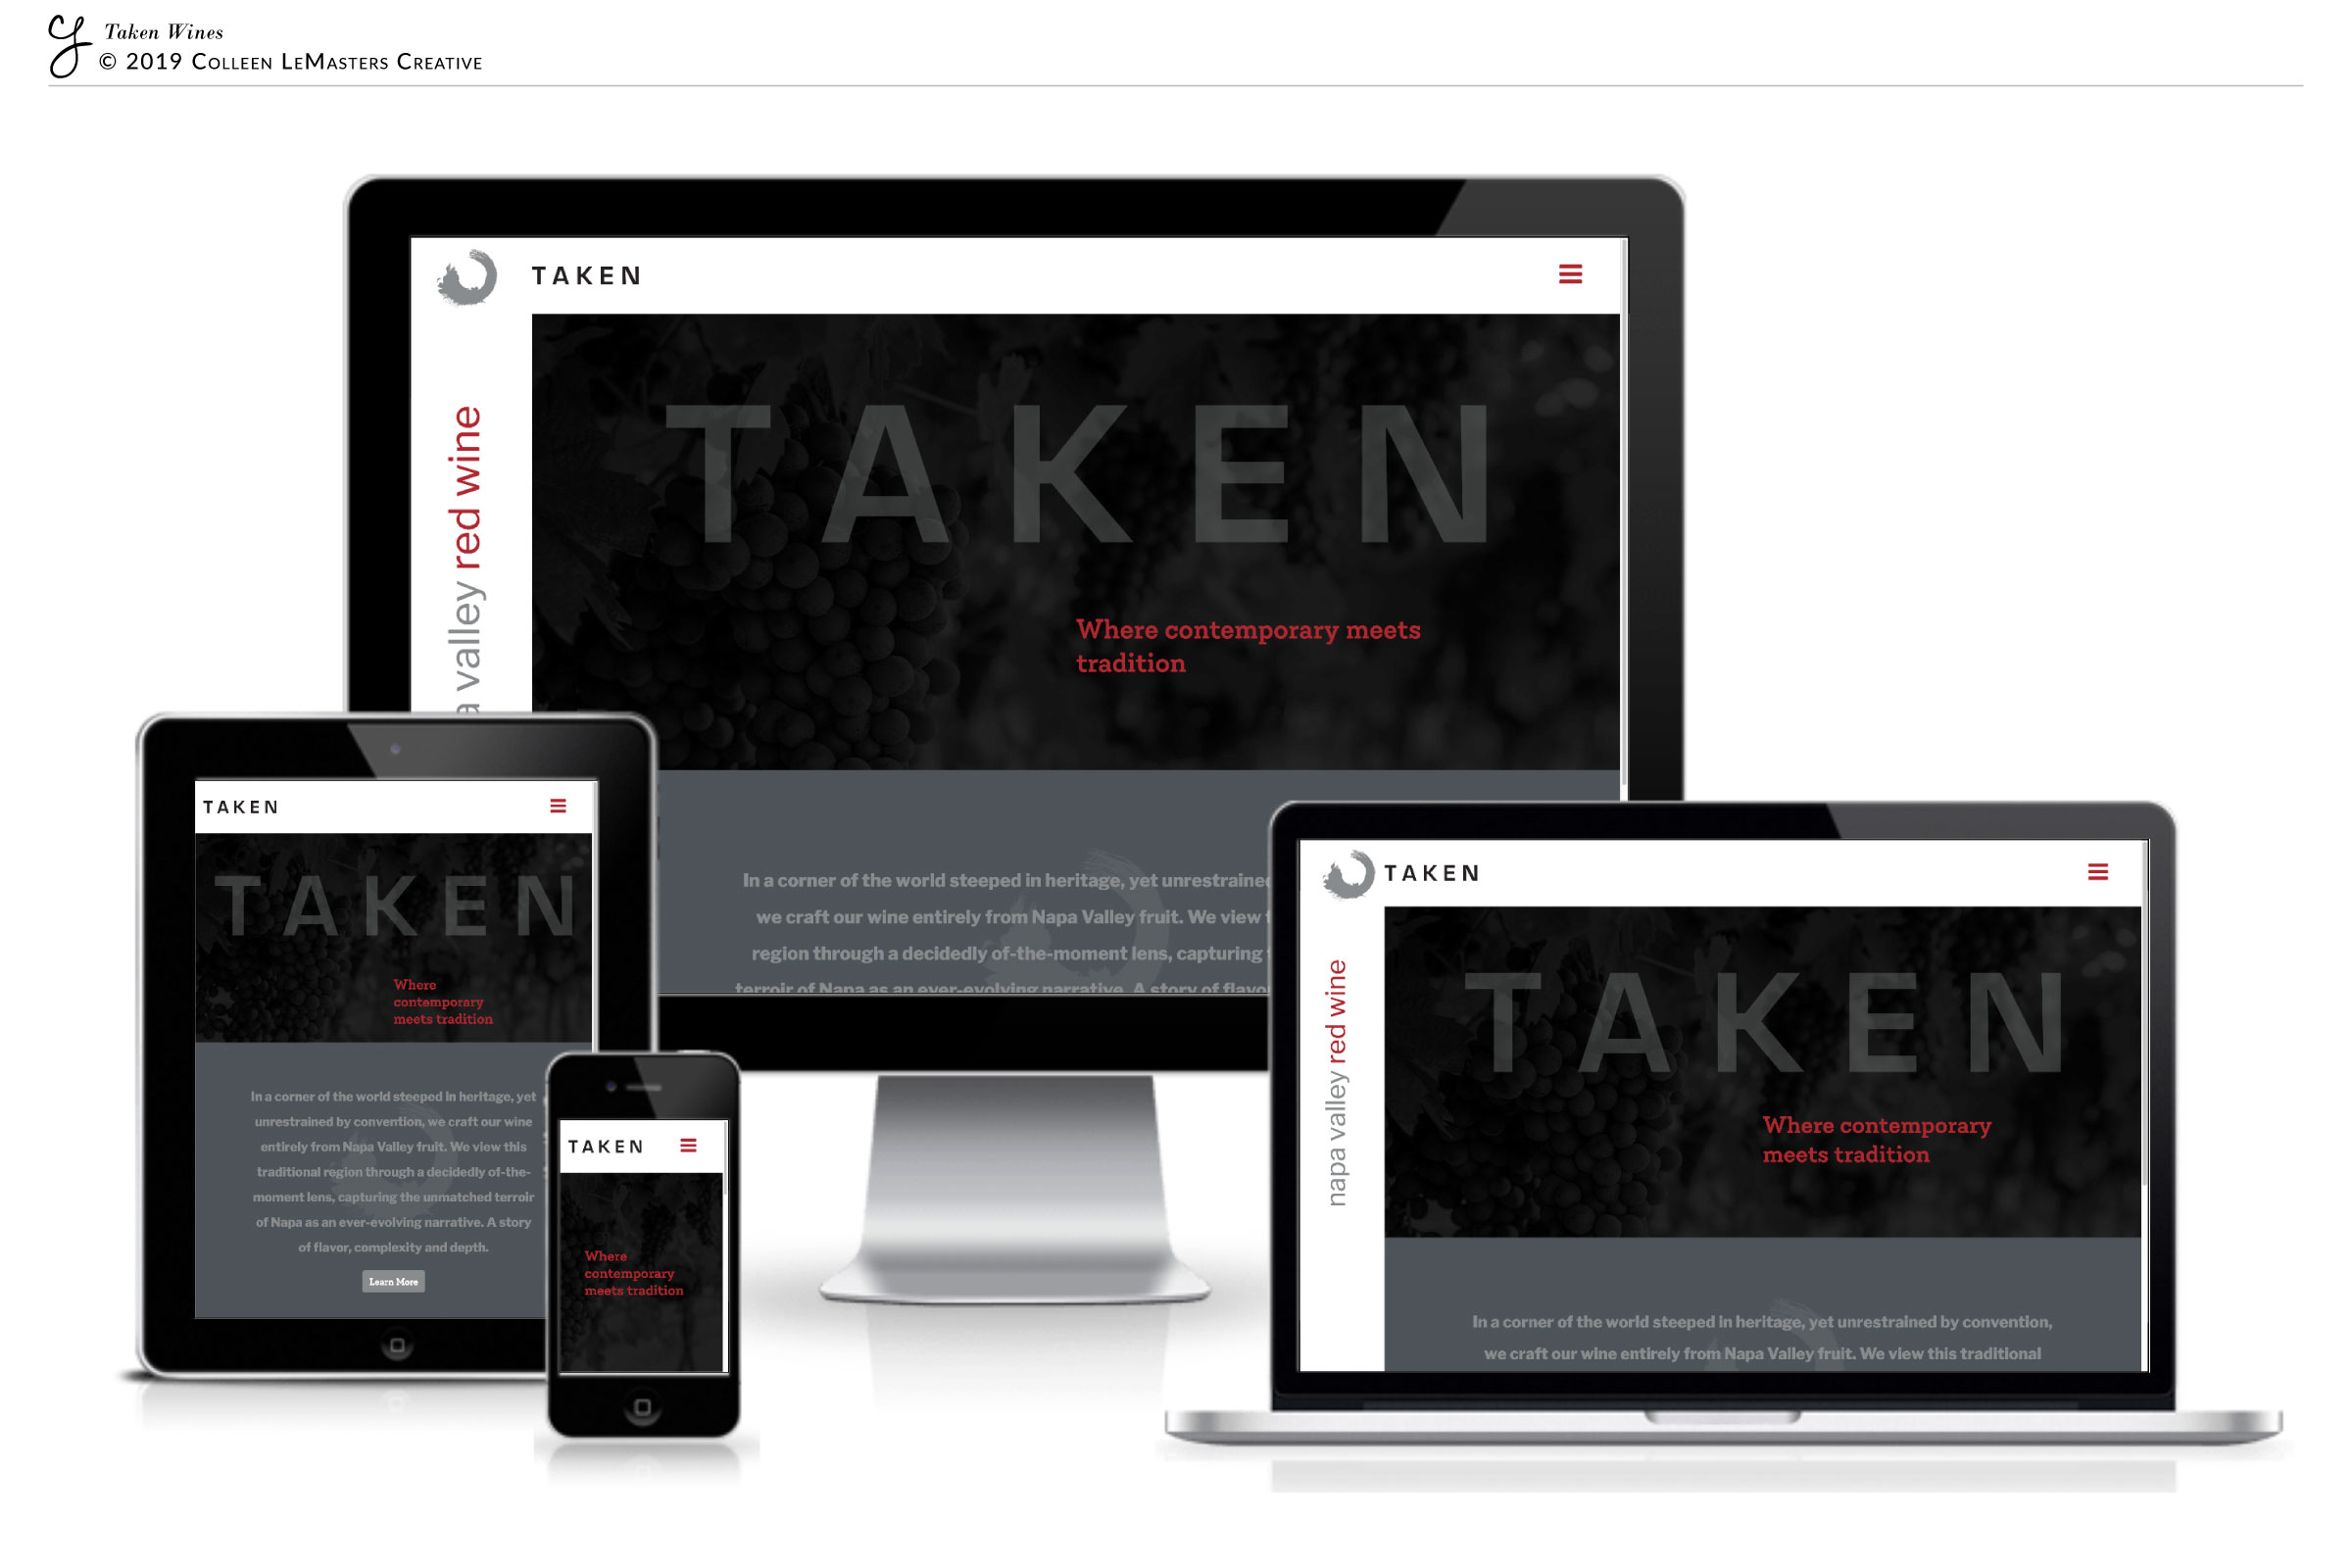 taken-wines_clcreative-site